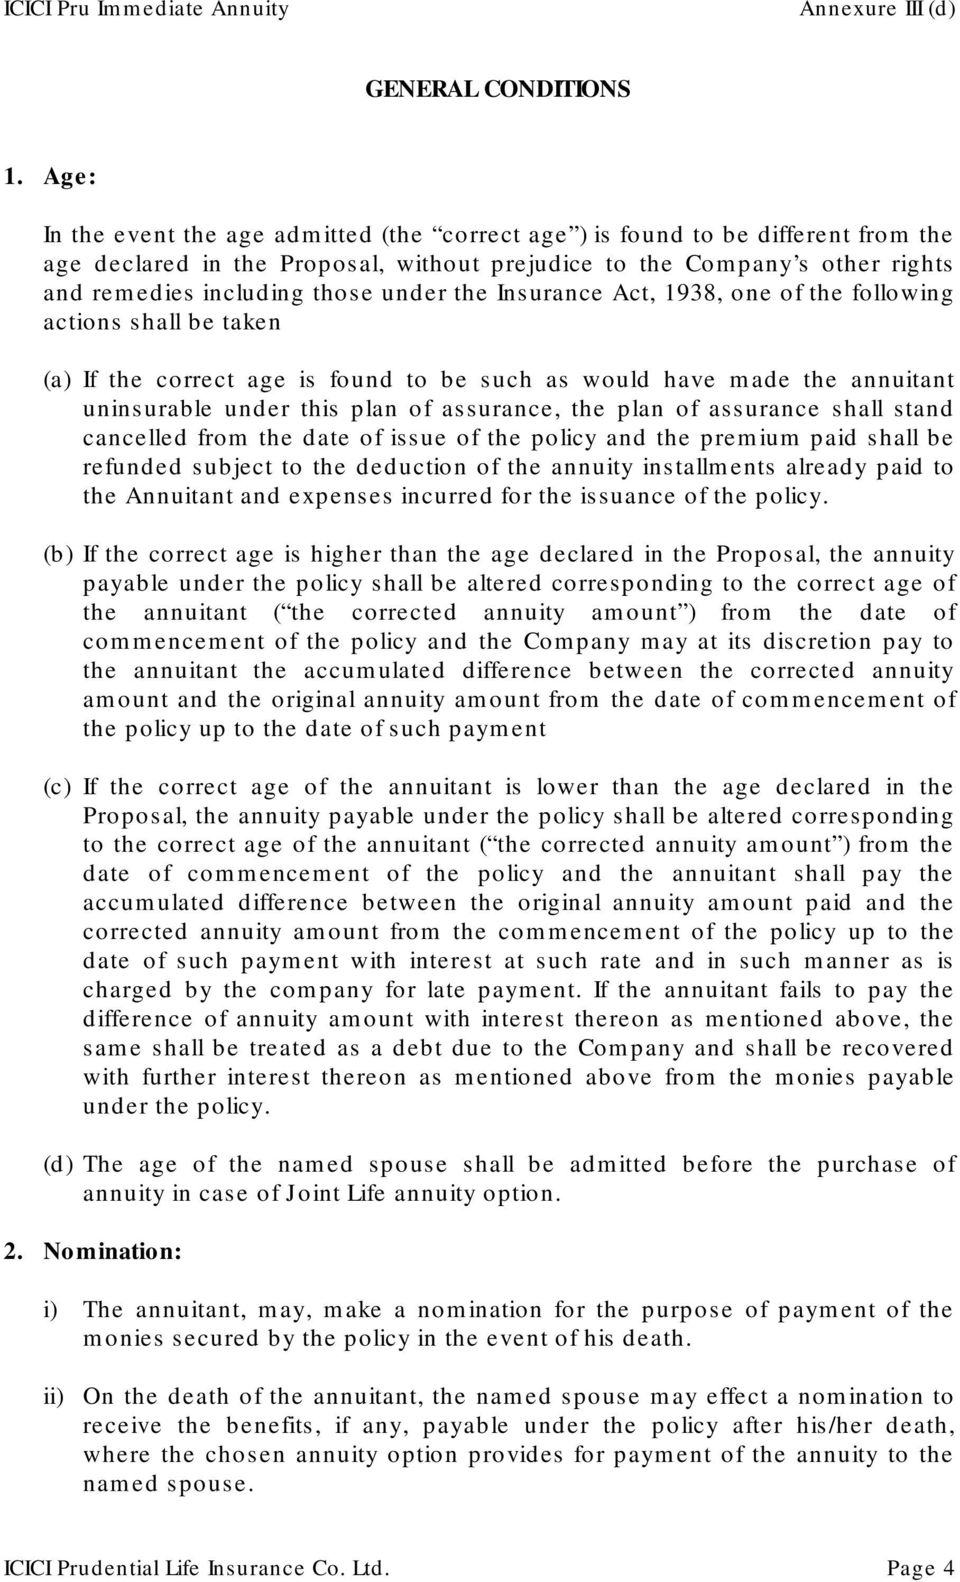 under the Insurance Act, 1938, one of the following actions shall be taken (a) If the correct age is found to be such as would have made the annuitant uninsurable under this plan of assurance, the